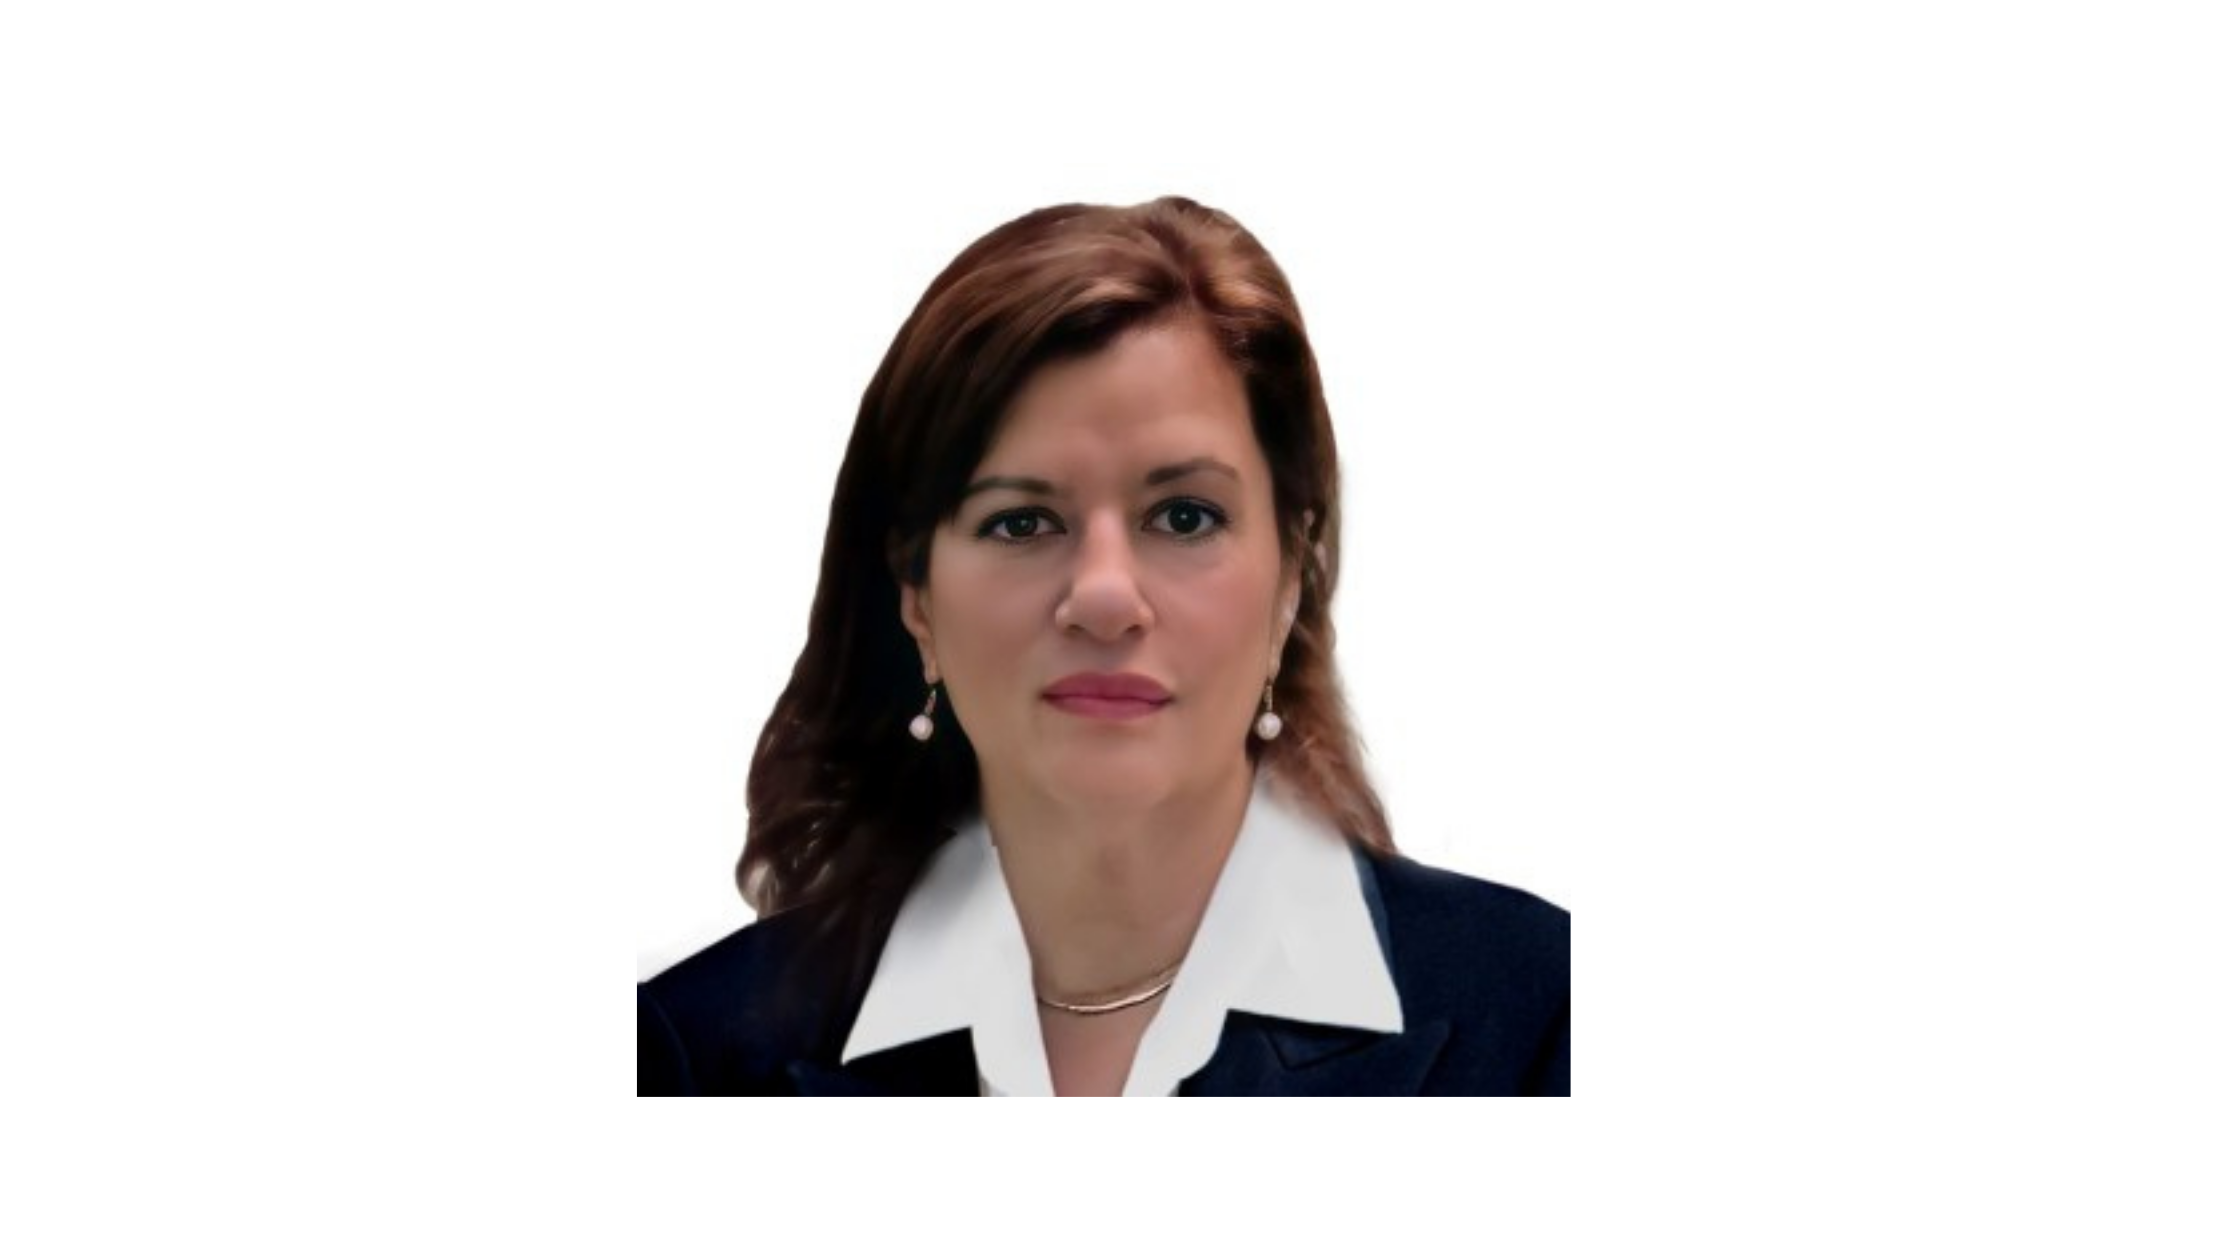 Dena Falken Ceo and Founder of Legal-Ease International trains Foreign Legal Professionals to talk the Legal Talk